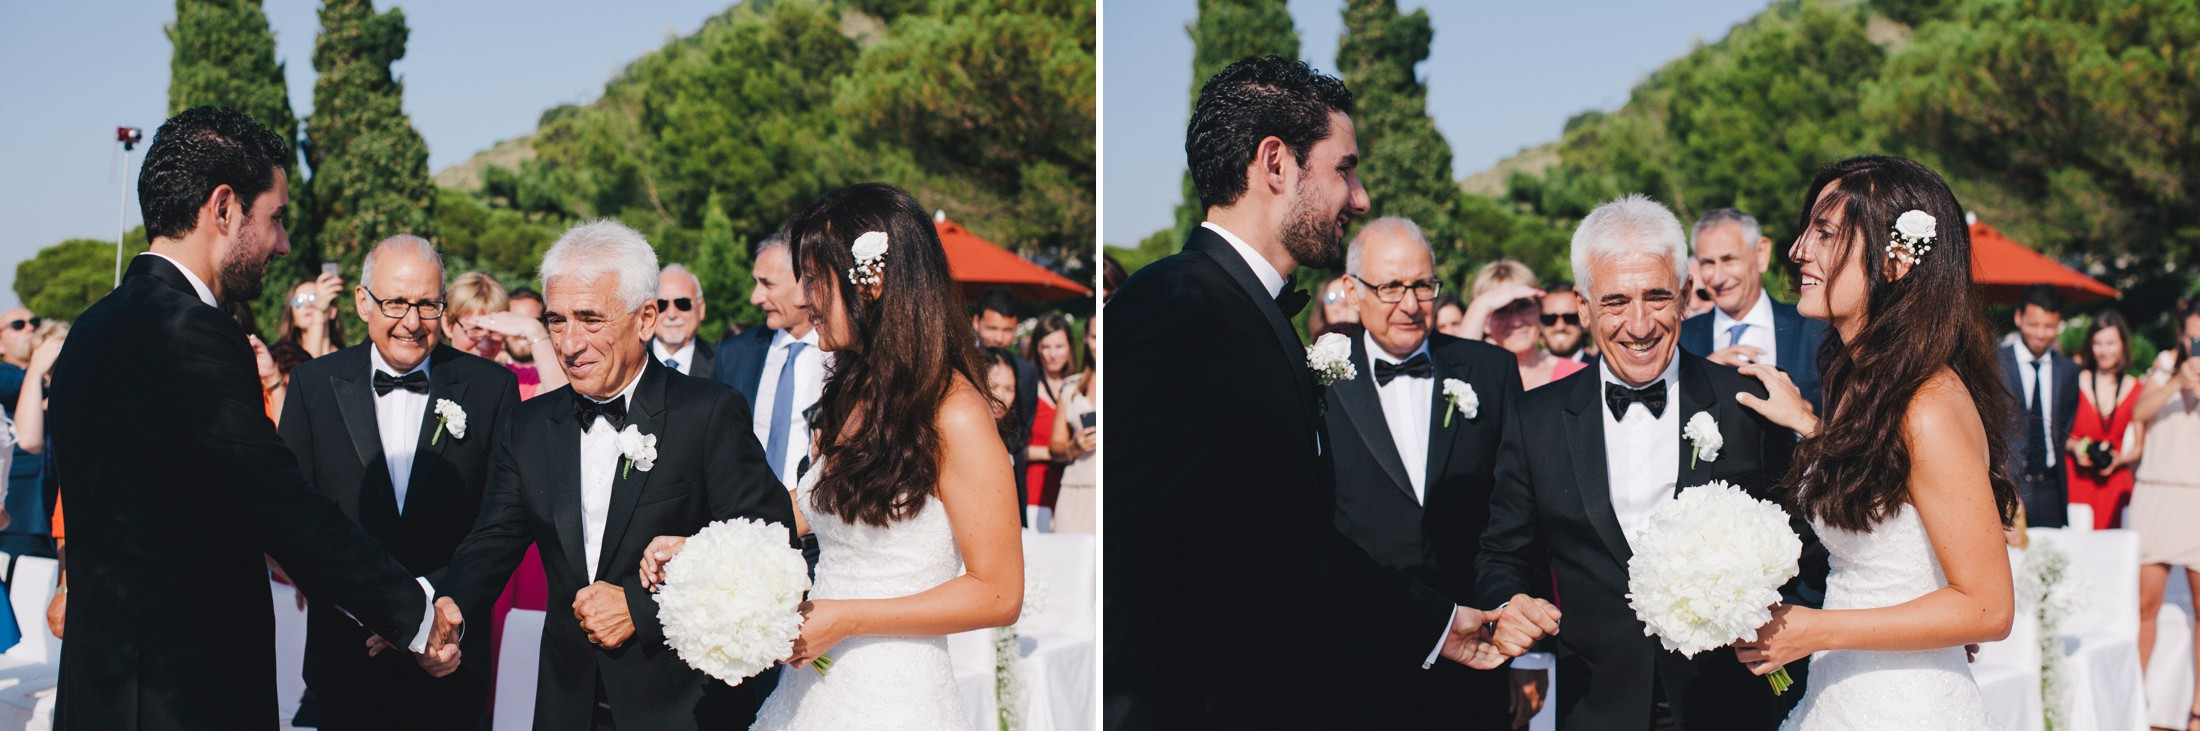 collage the bride join the groom at the aisle